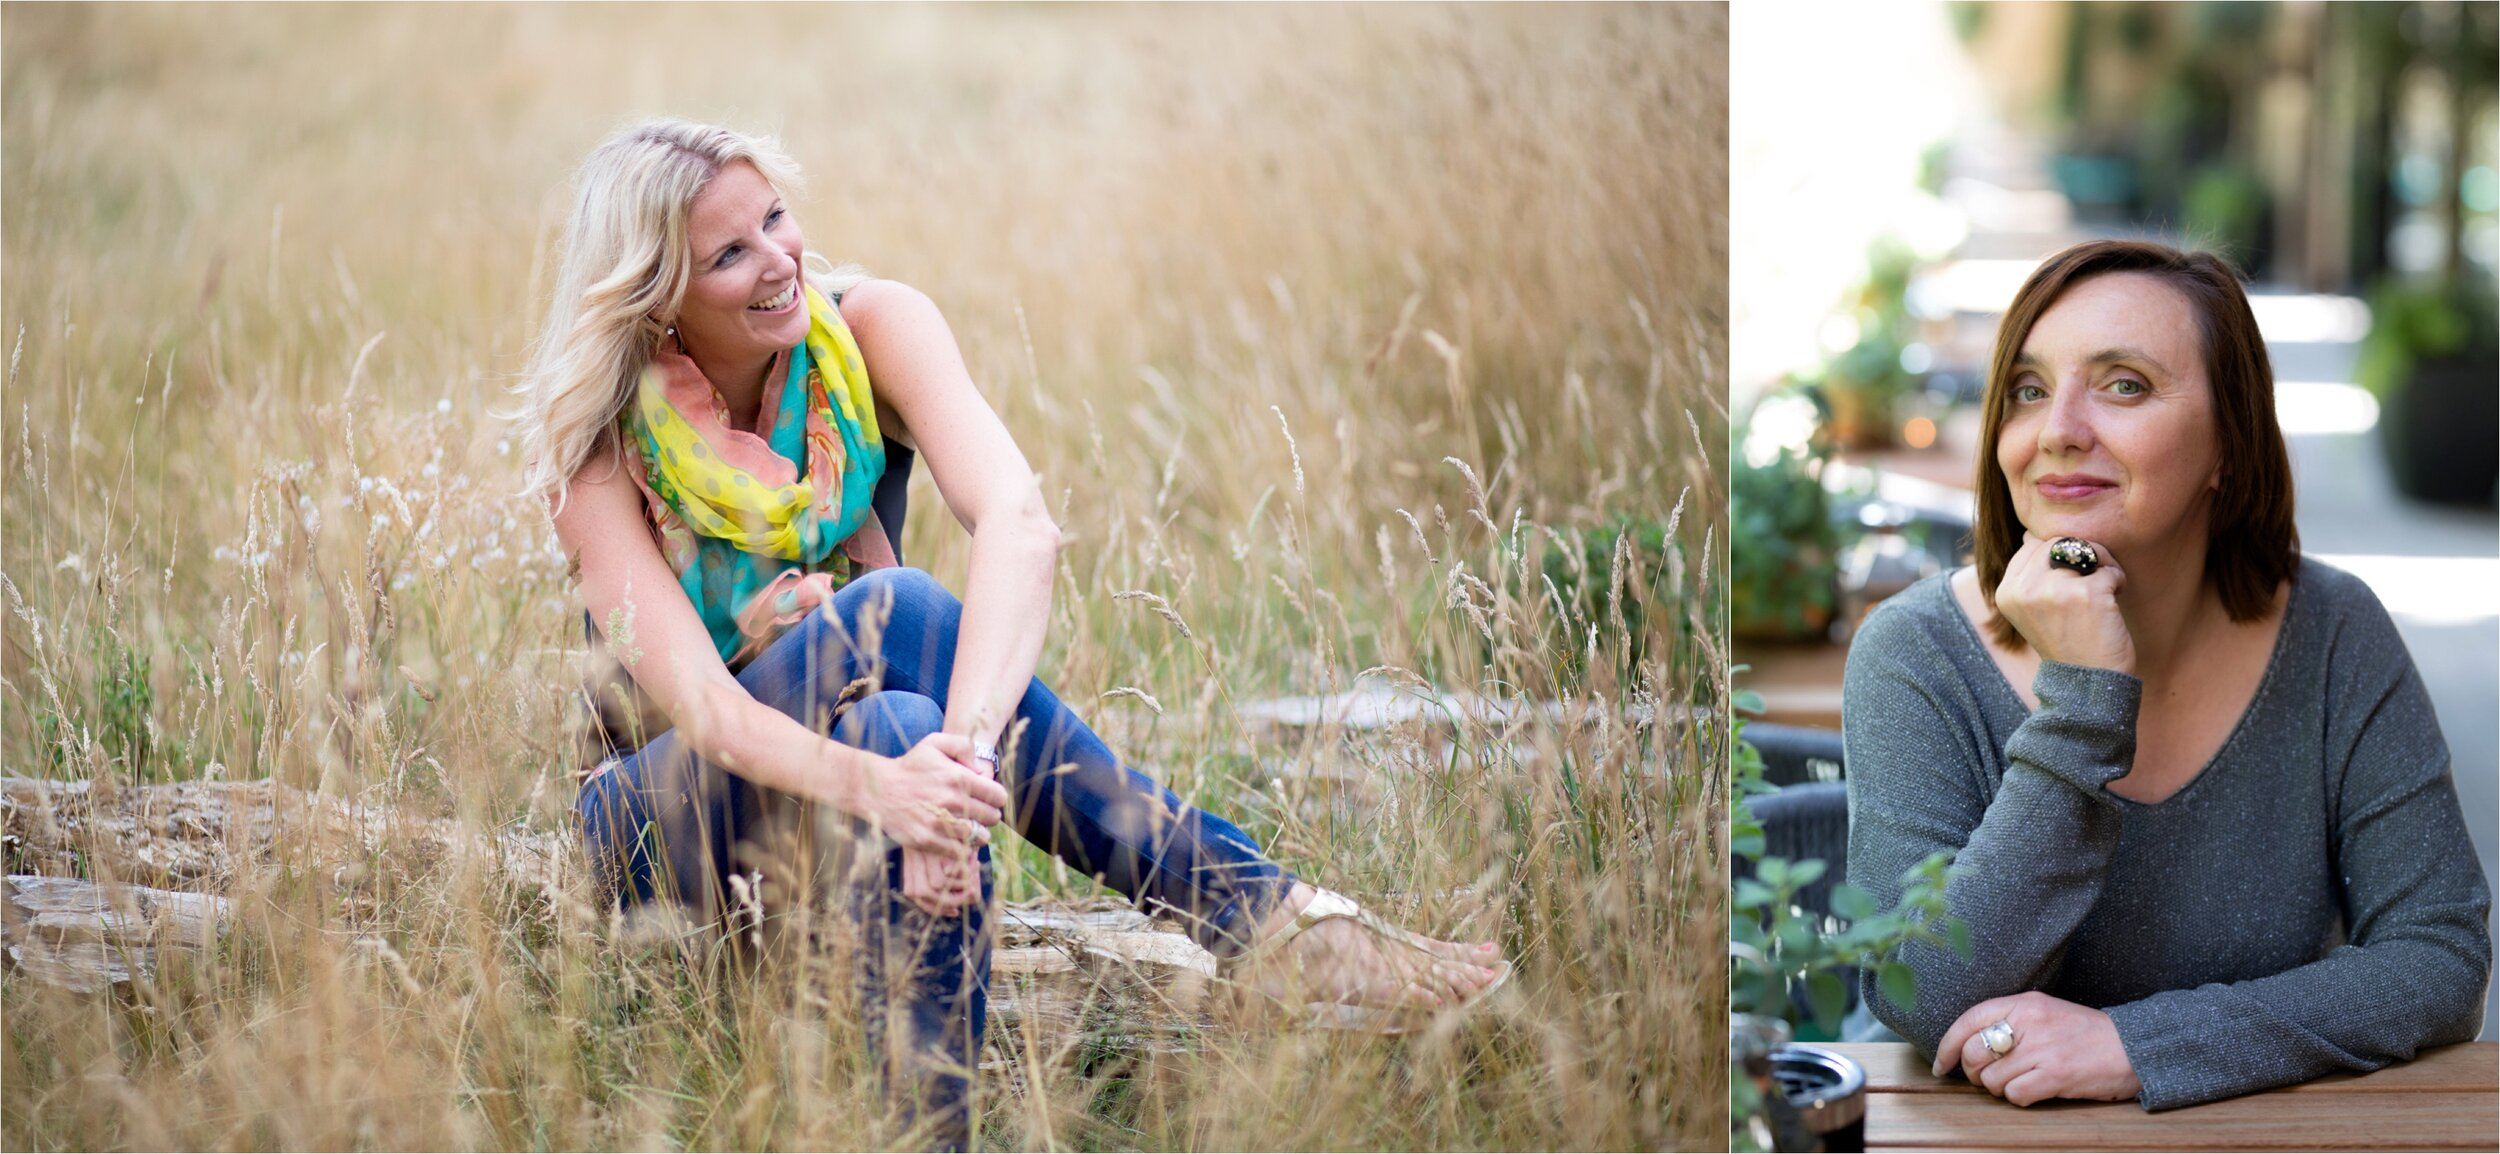 The D Studios Photography Blog With Advice and Photography